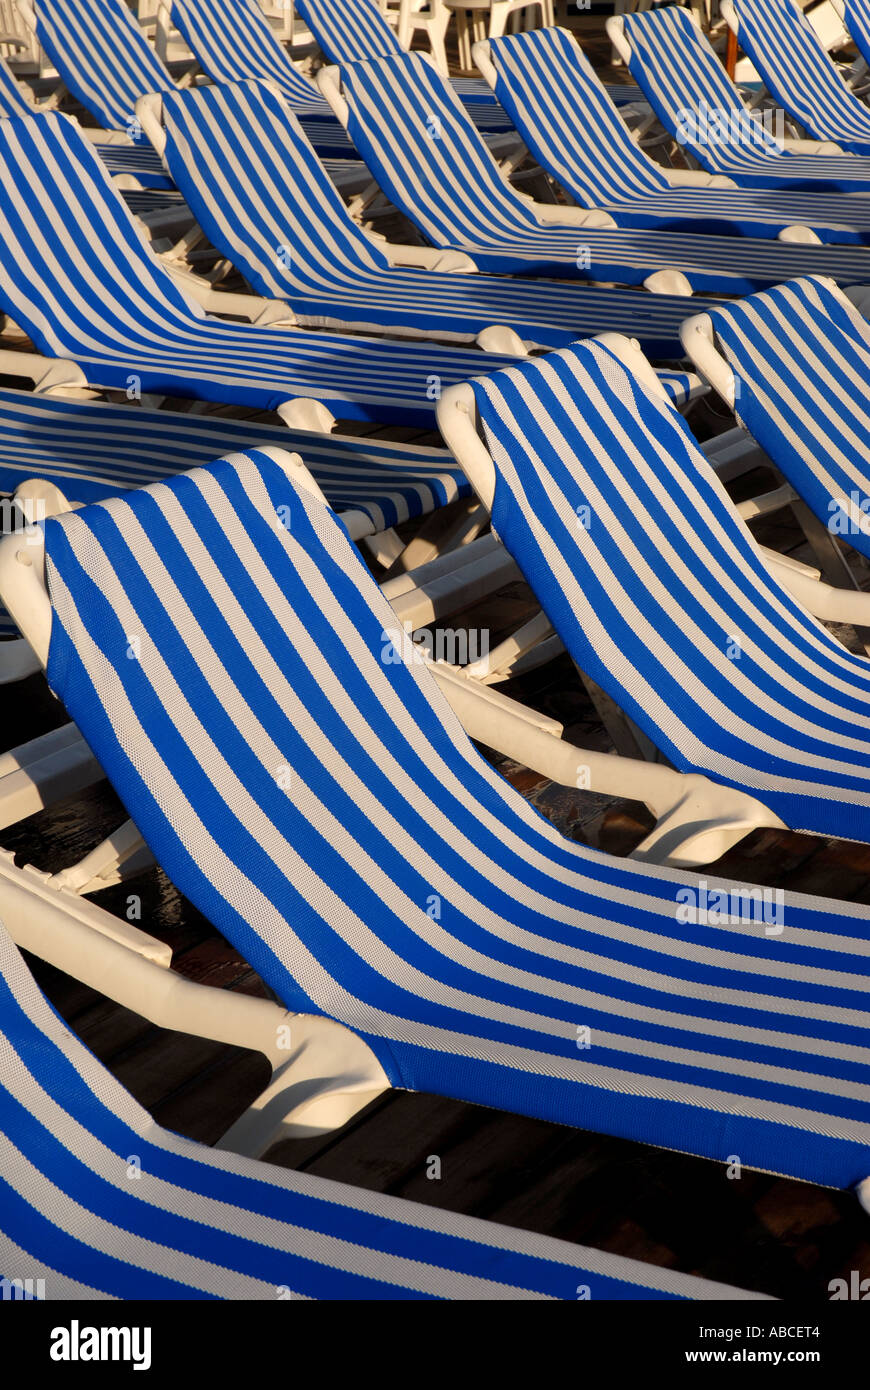 Tremendous Lounge Deck Pool Chairs Empty Blue White Stripes Stock Photo Cjindustries Chair Design For Home Cjindustriesco